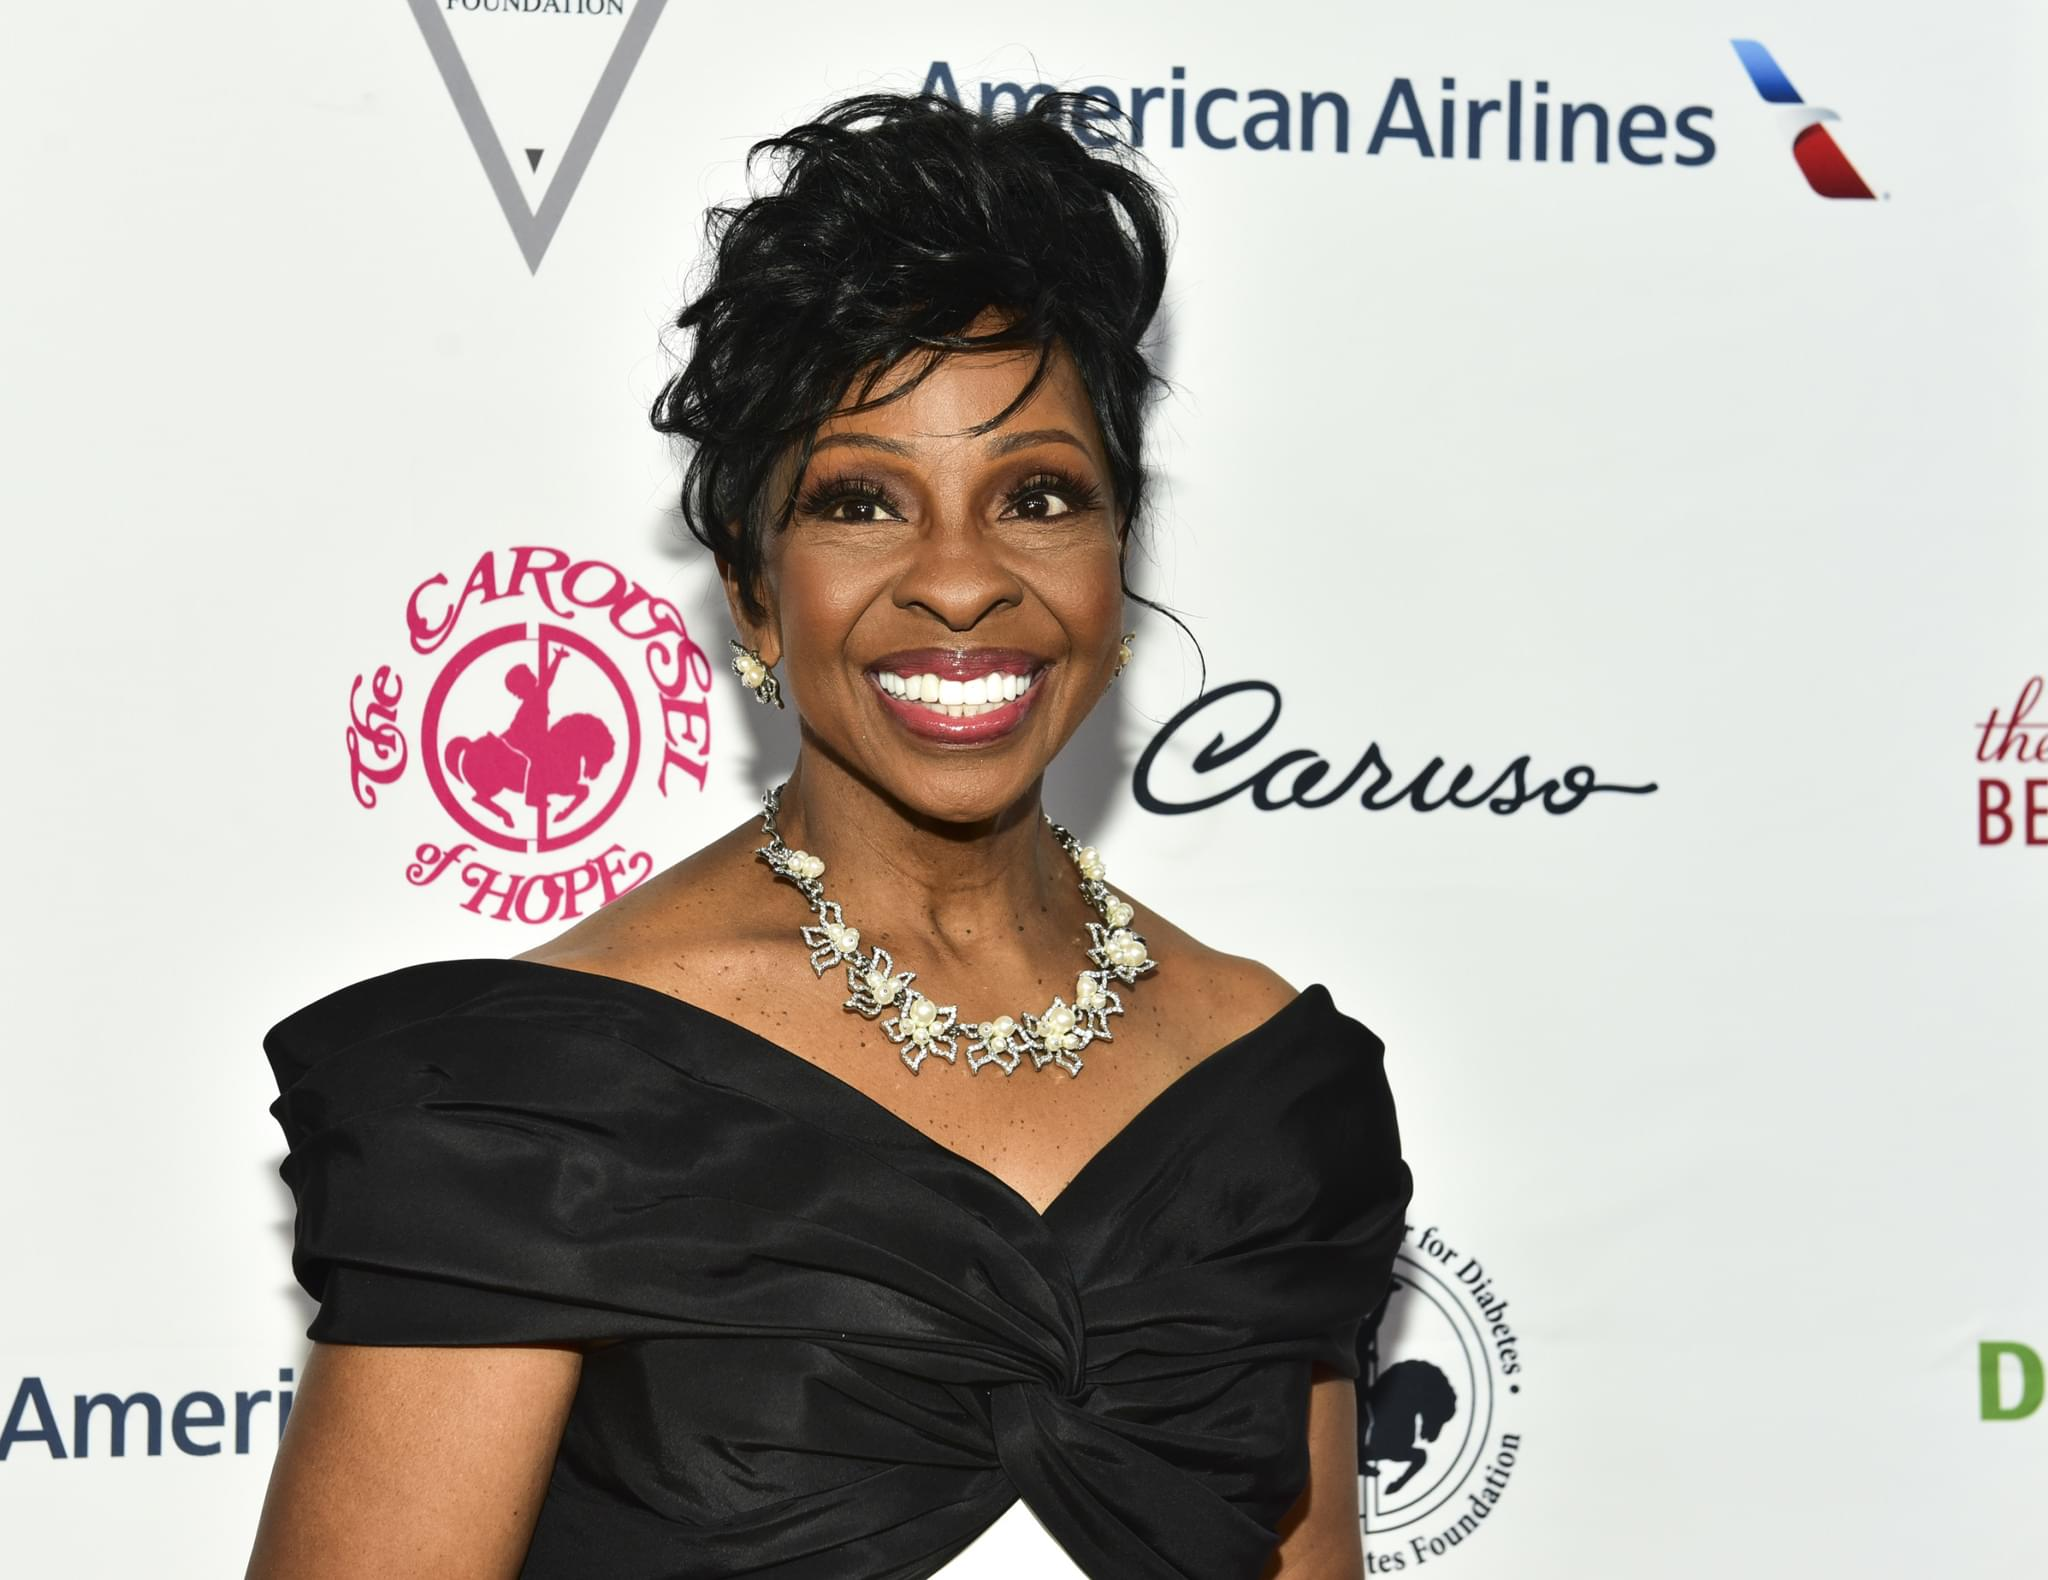 Gladys Knight is singing the National Anthem at the Super Bowl